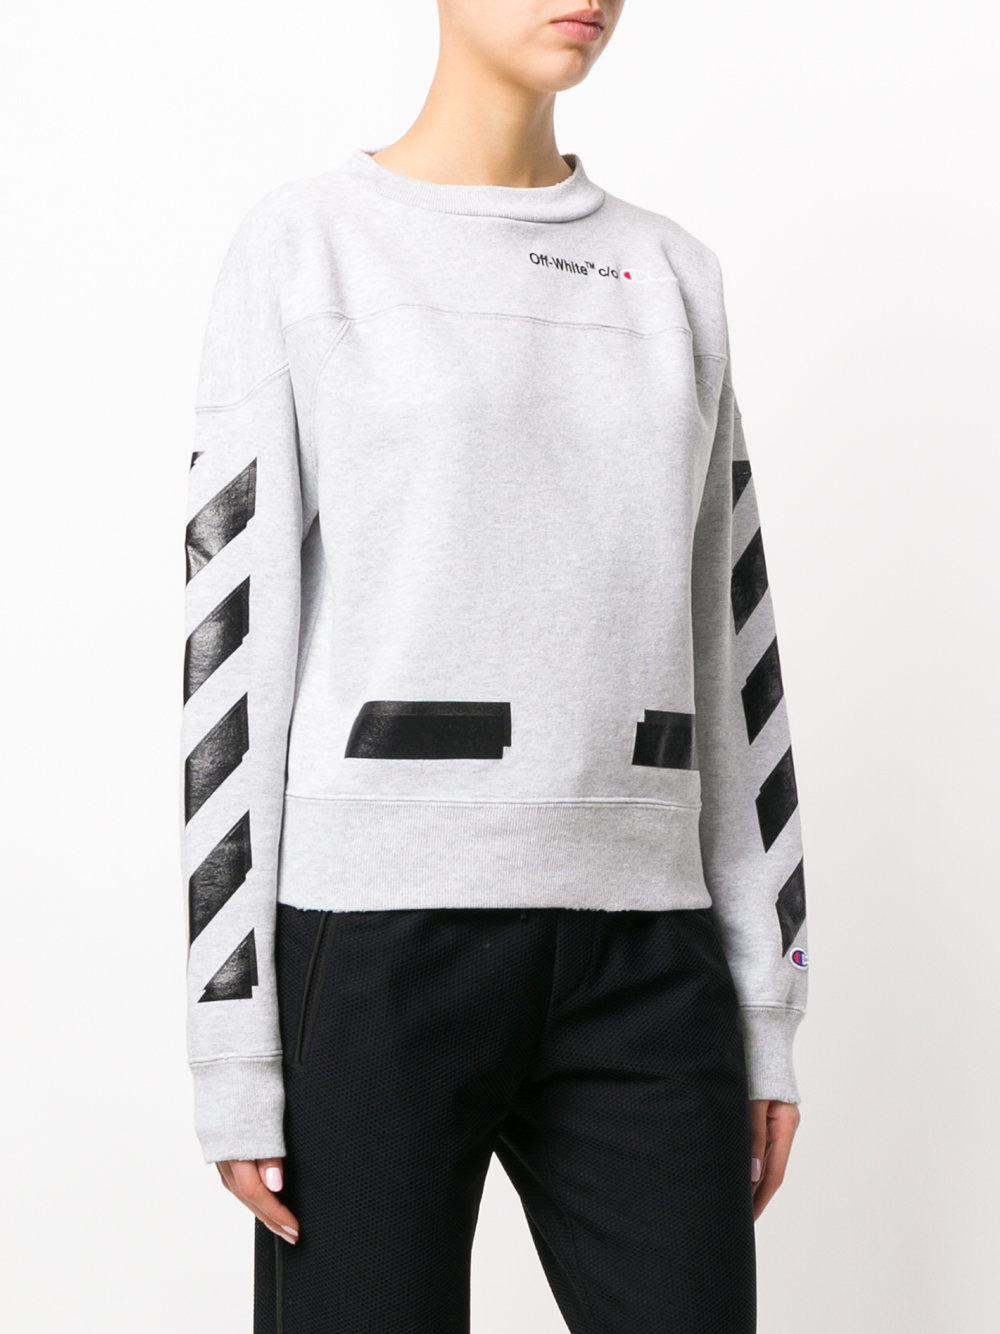 off white c o virgil abloh arrows champion sweatshirt in gray lyst. Black Bedroom Furniture Sets. Home Design Ideas